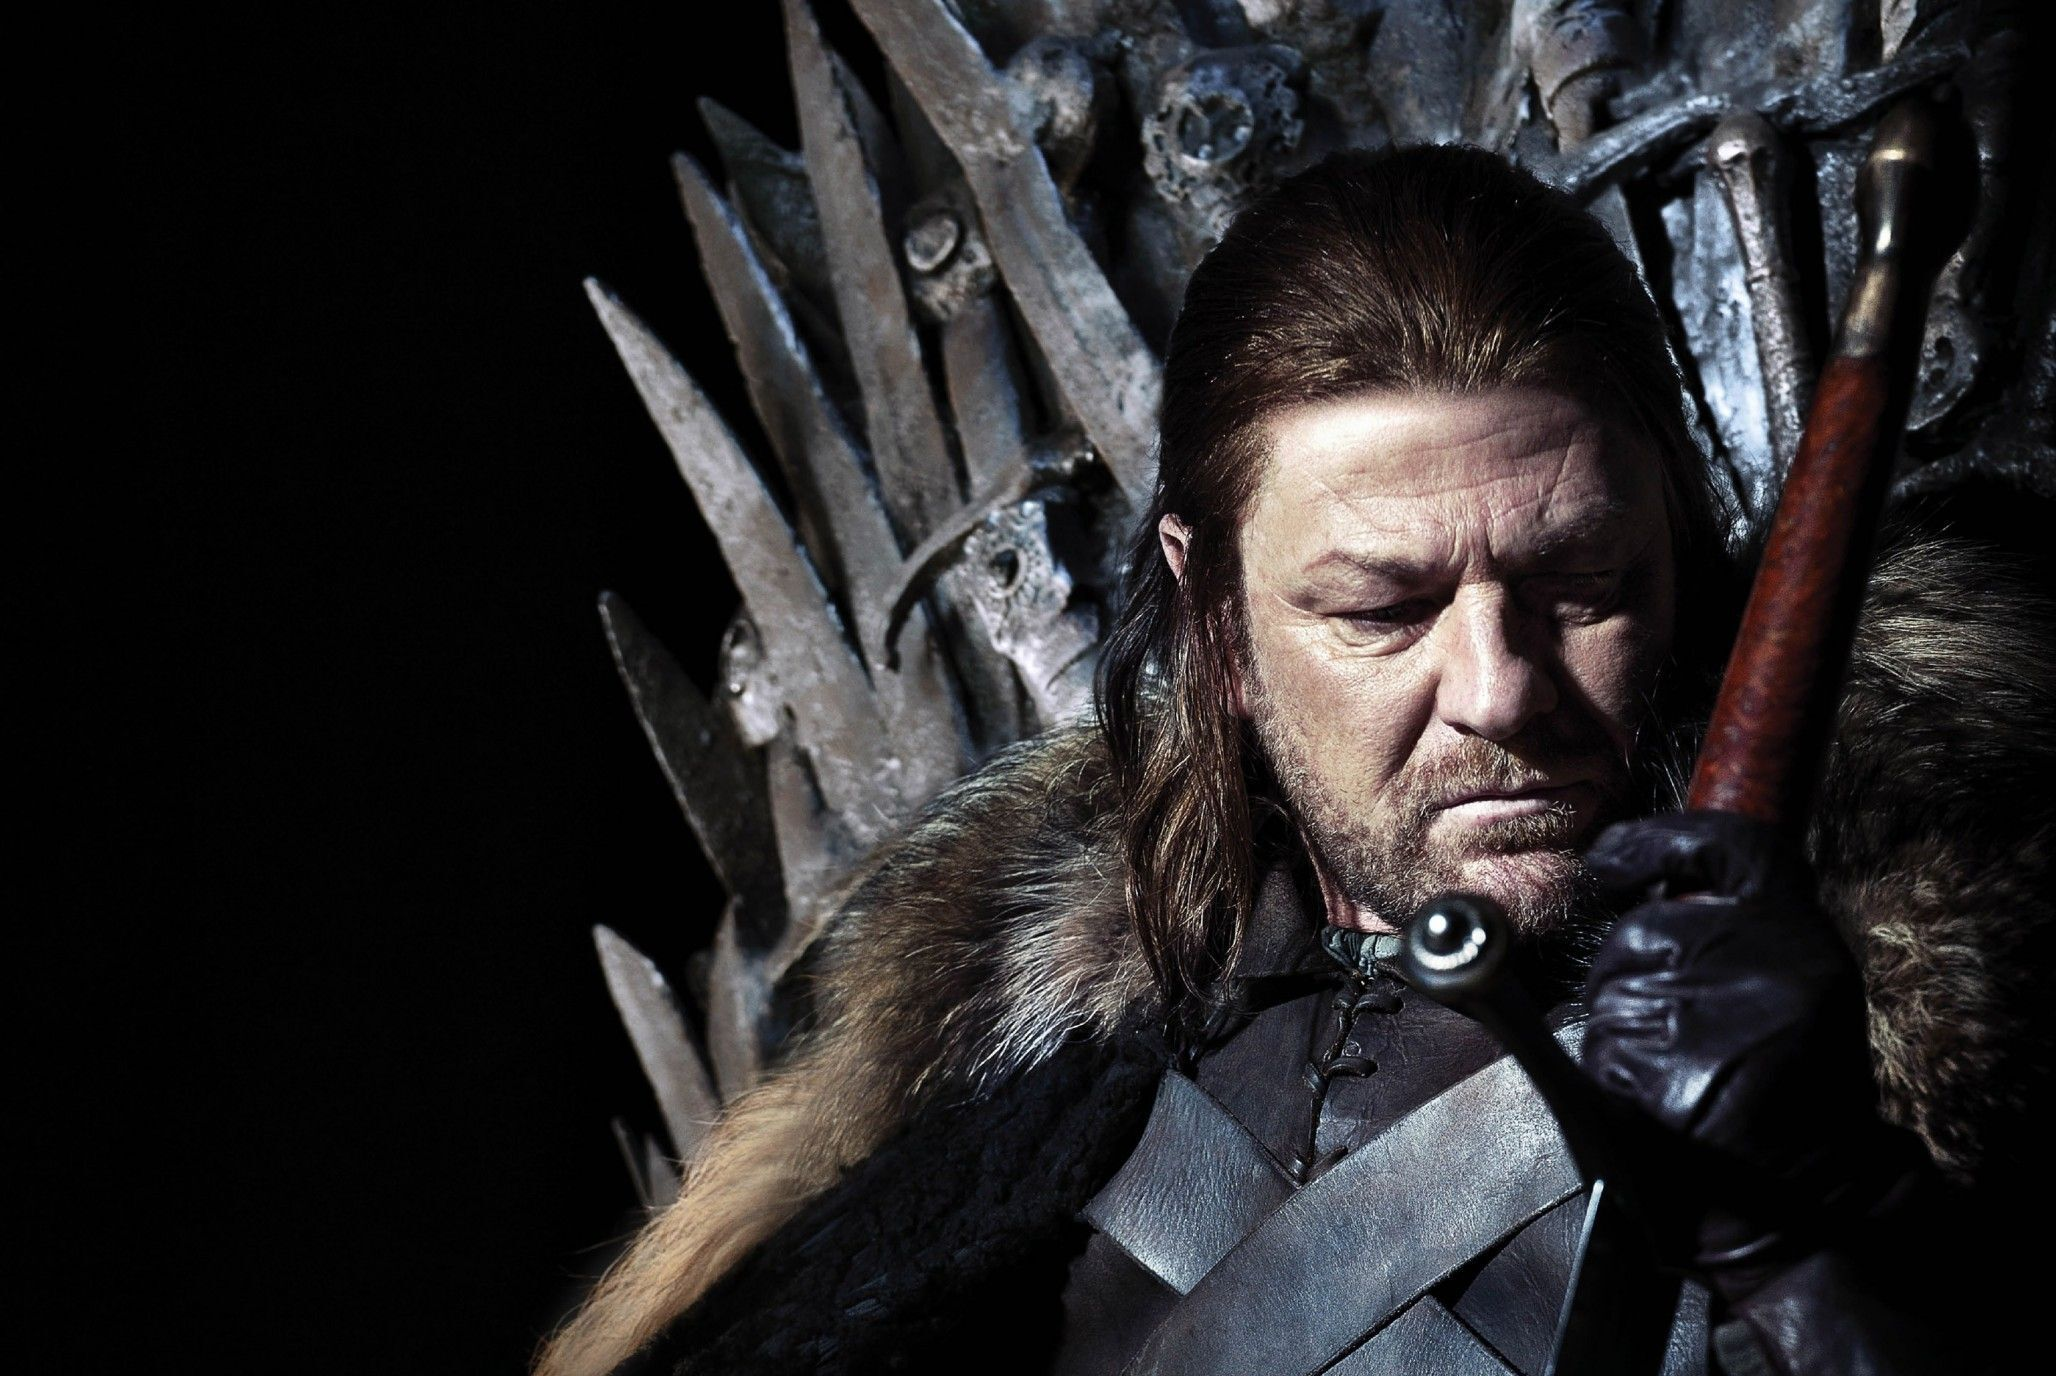 Game of Thrones: Ned Stark's arc may hint at how the season will end for Jon Snow